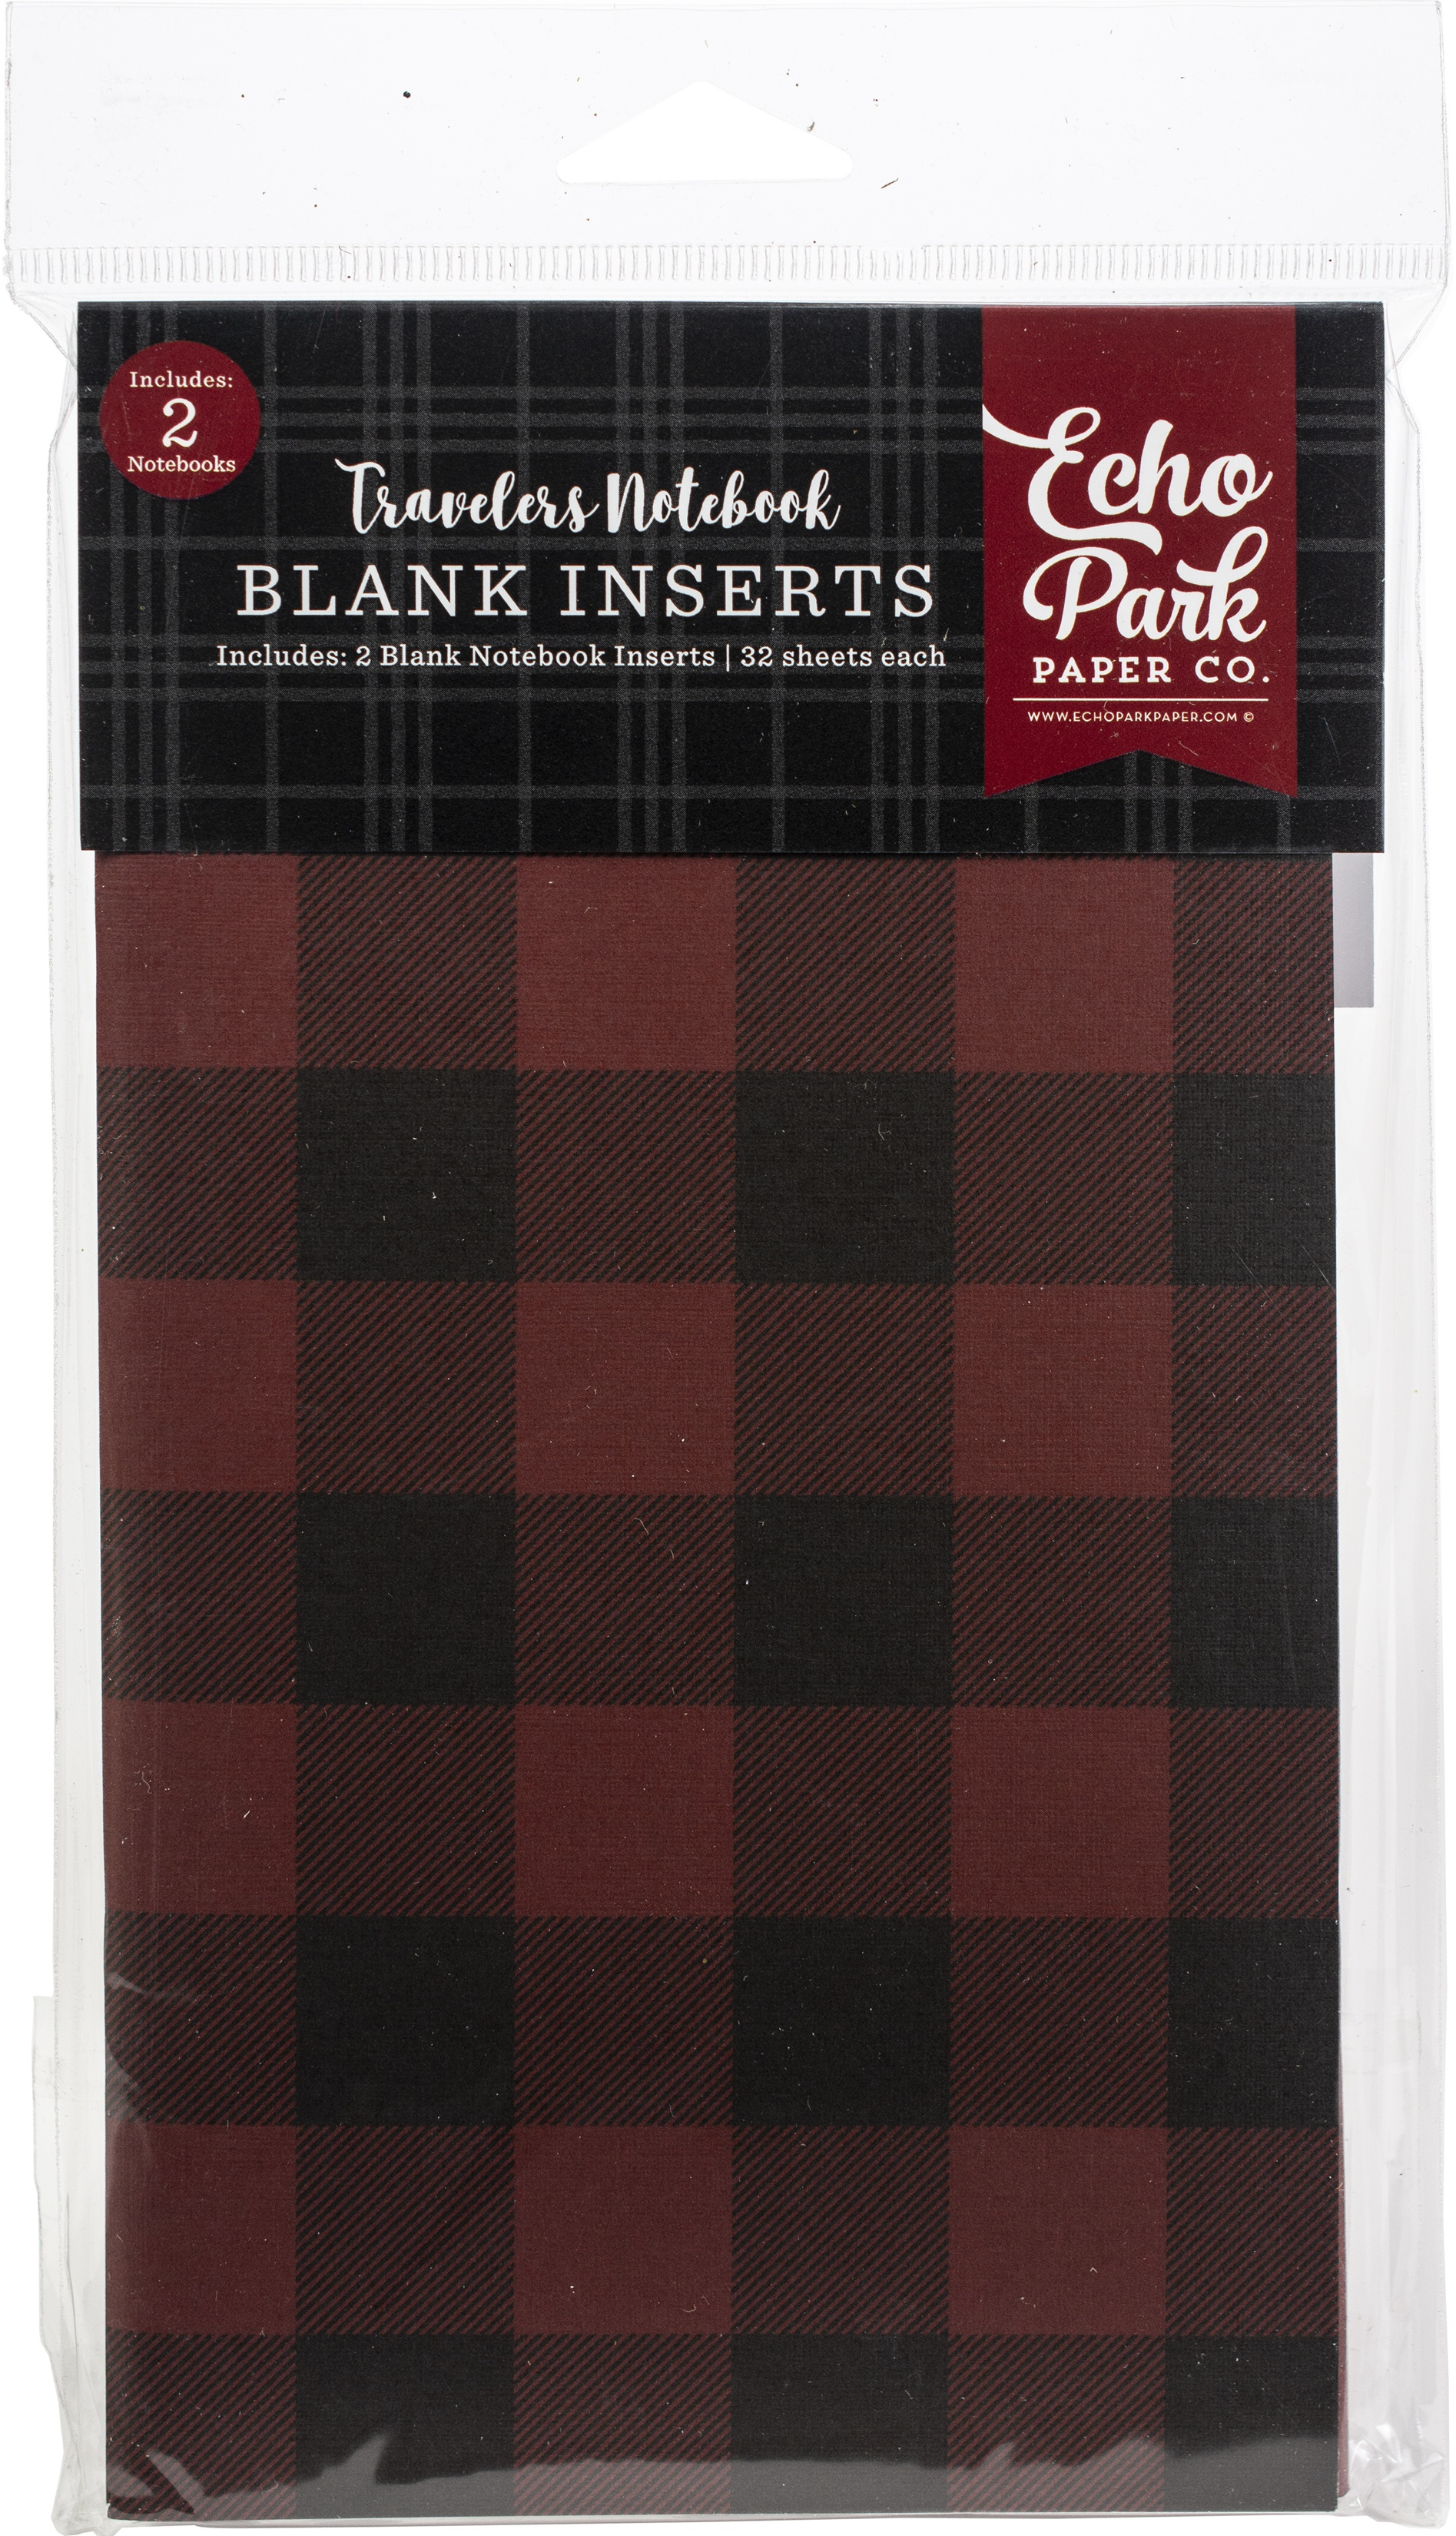 Echo Park - Travelers Notebook Red Buffalo Blank Inserts, 2/Pack